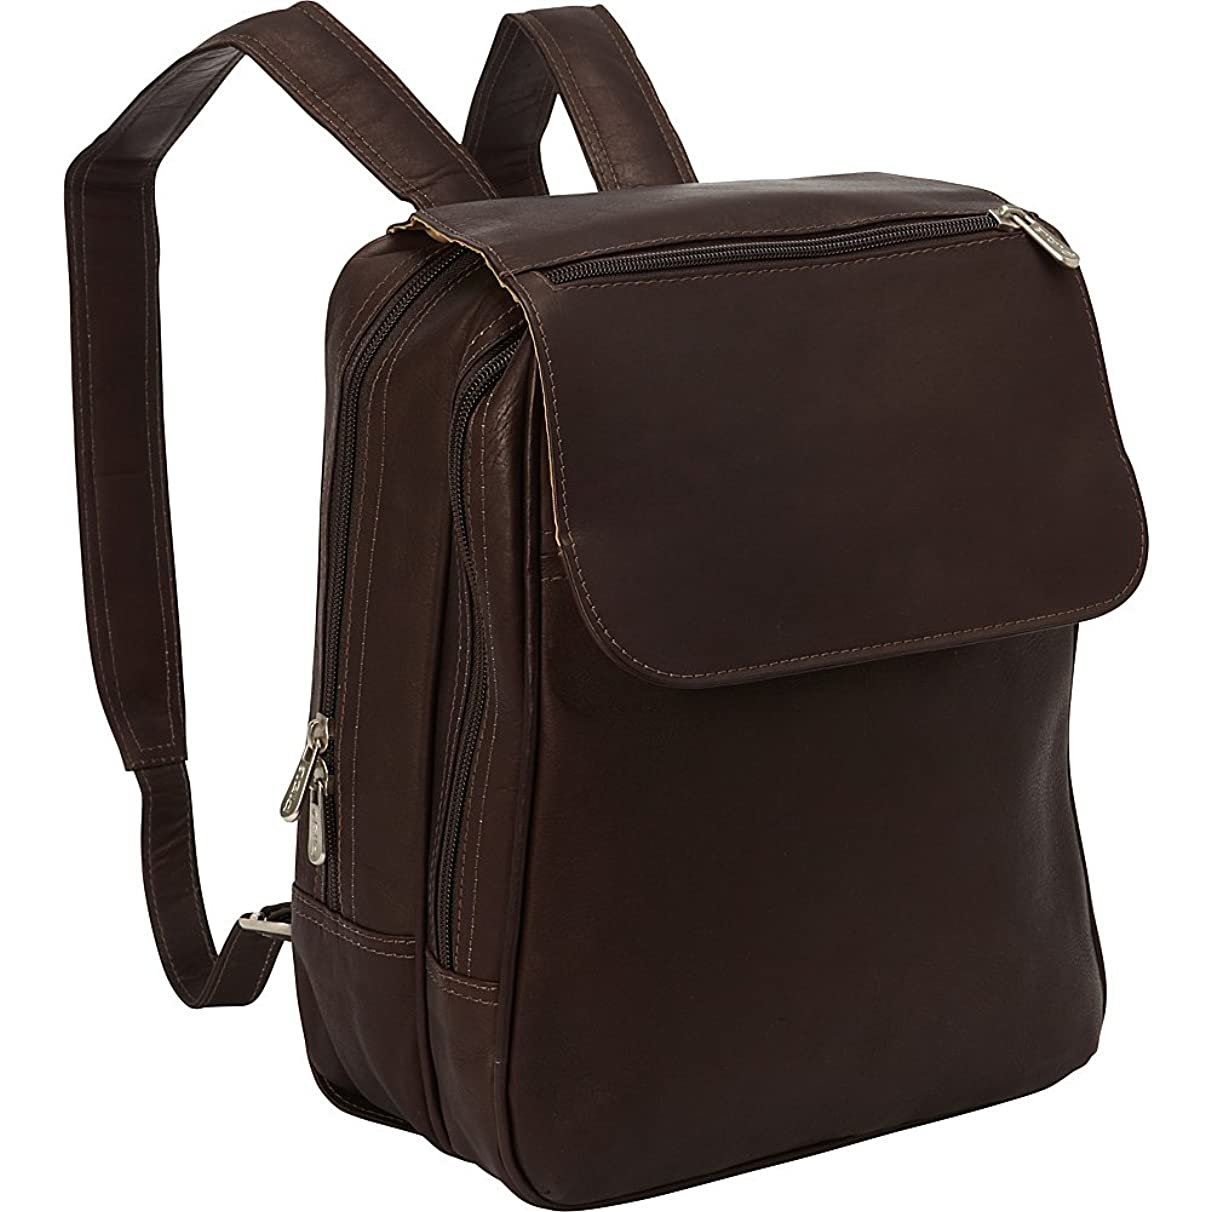 Piel Leather Flap-Over Tablet Backpack, Chocolate